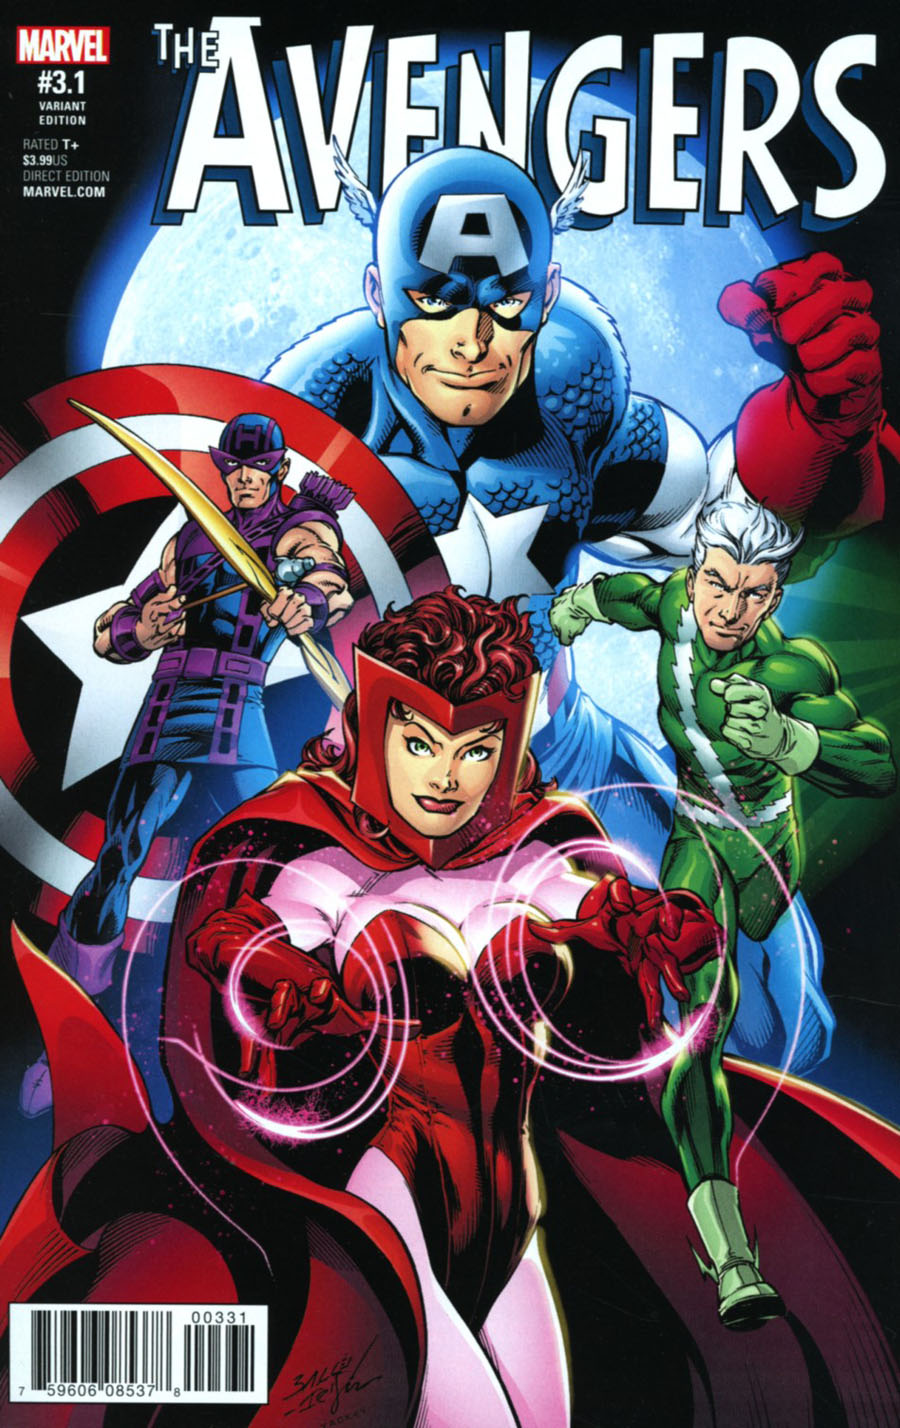 Avengers Vol 6 #3.1 Cover C Incentive Mark Bagley Variant Cover